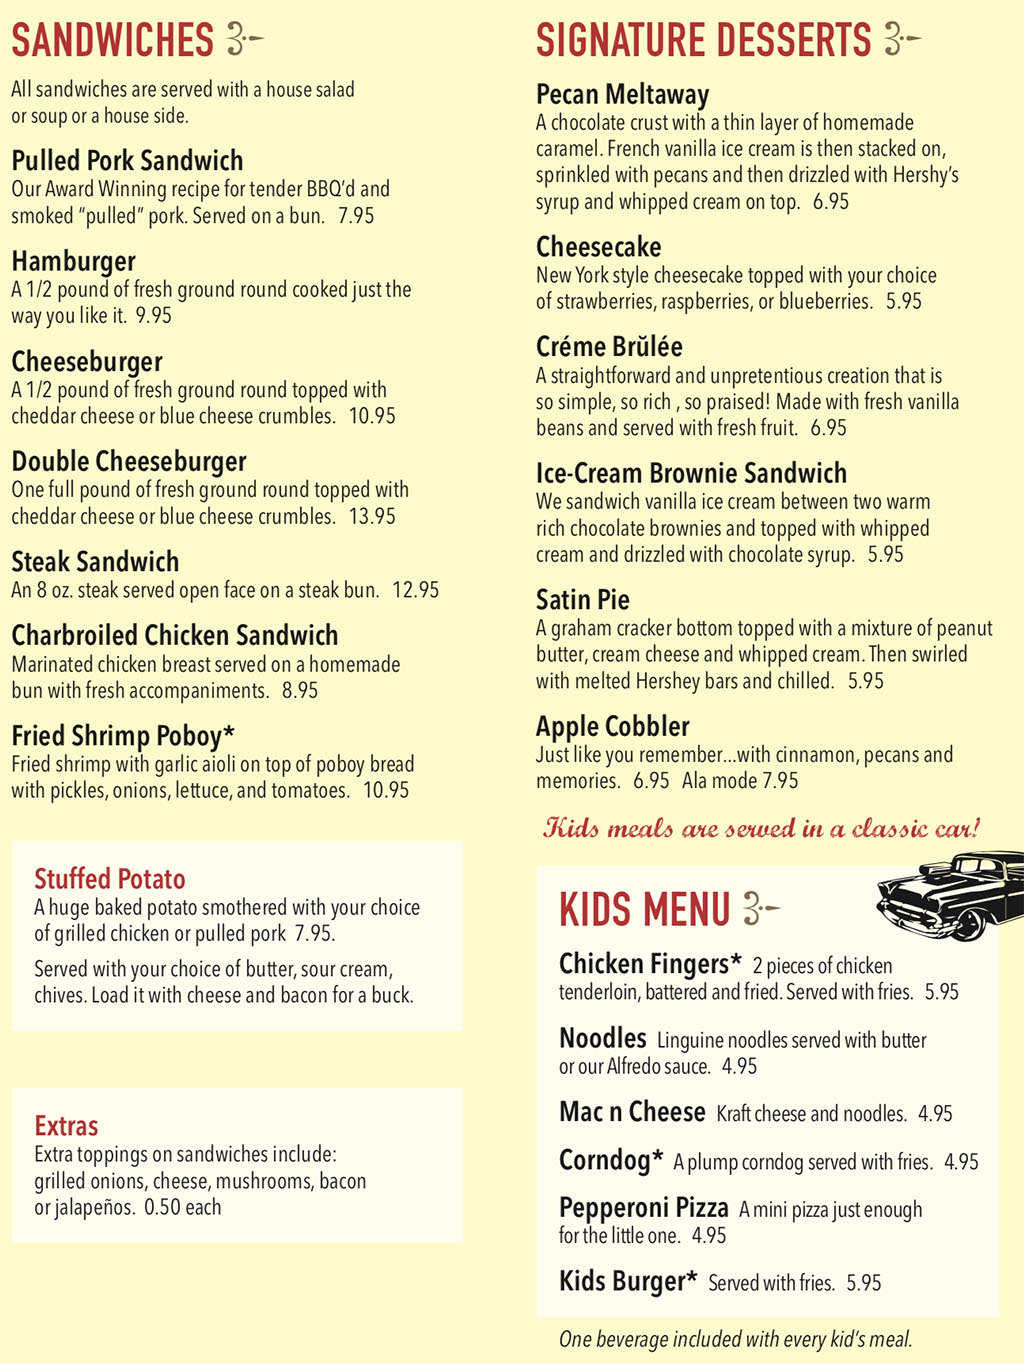 Rib And Chop House menu - sandwiches, desserts, kids menu